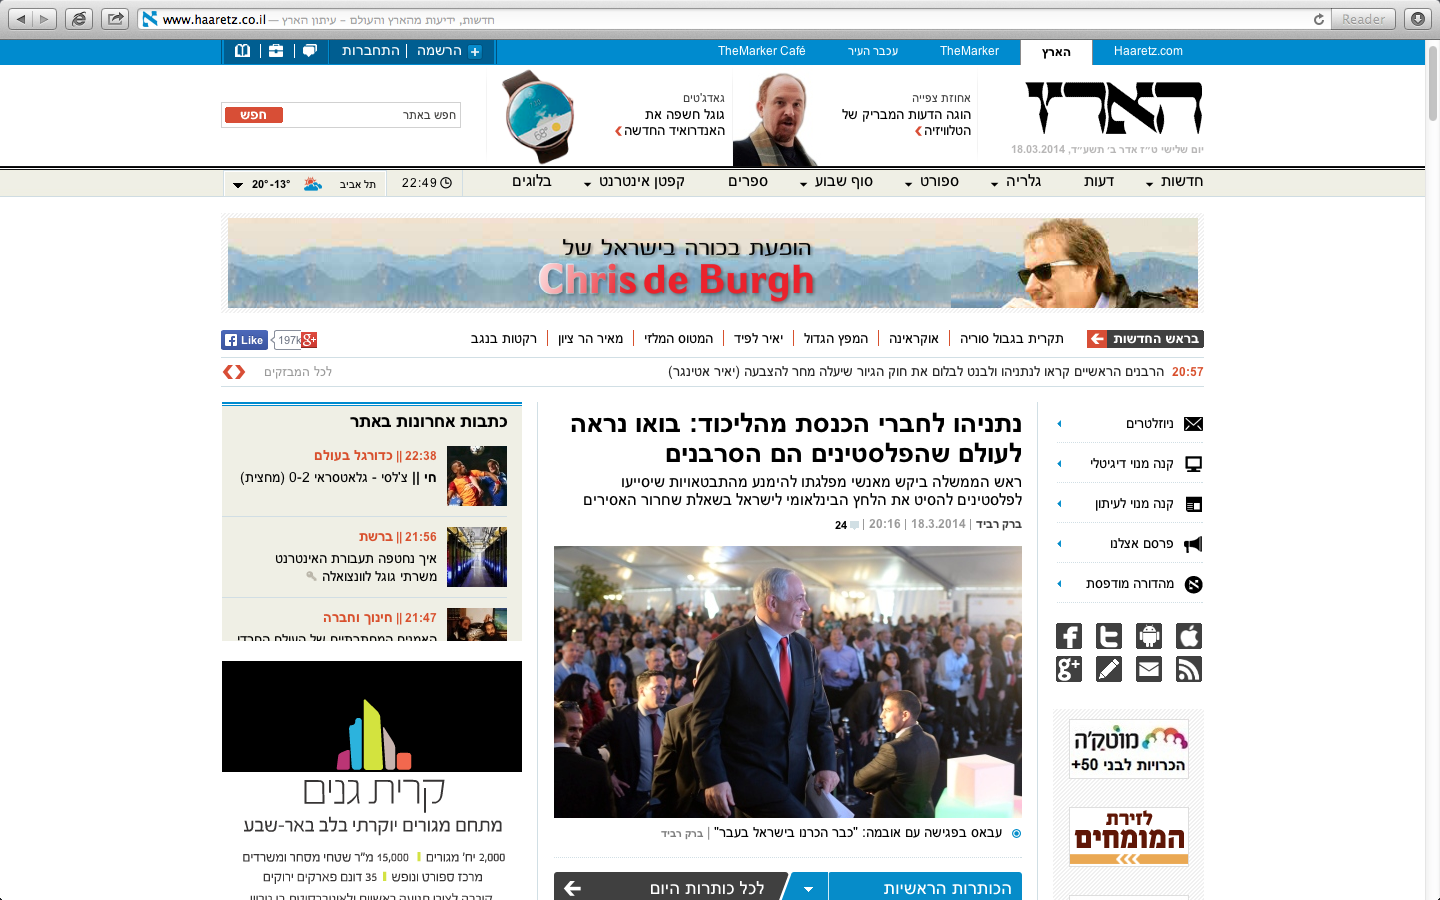 haaretz.co.il, Home Page